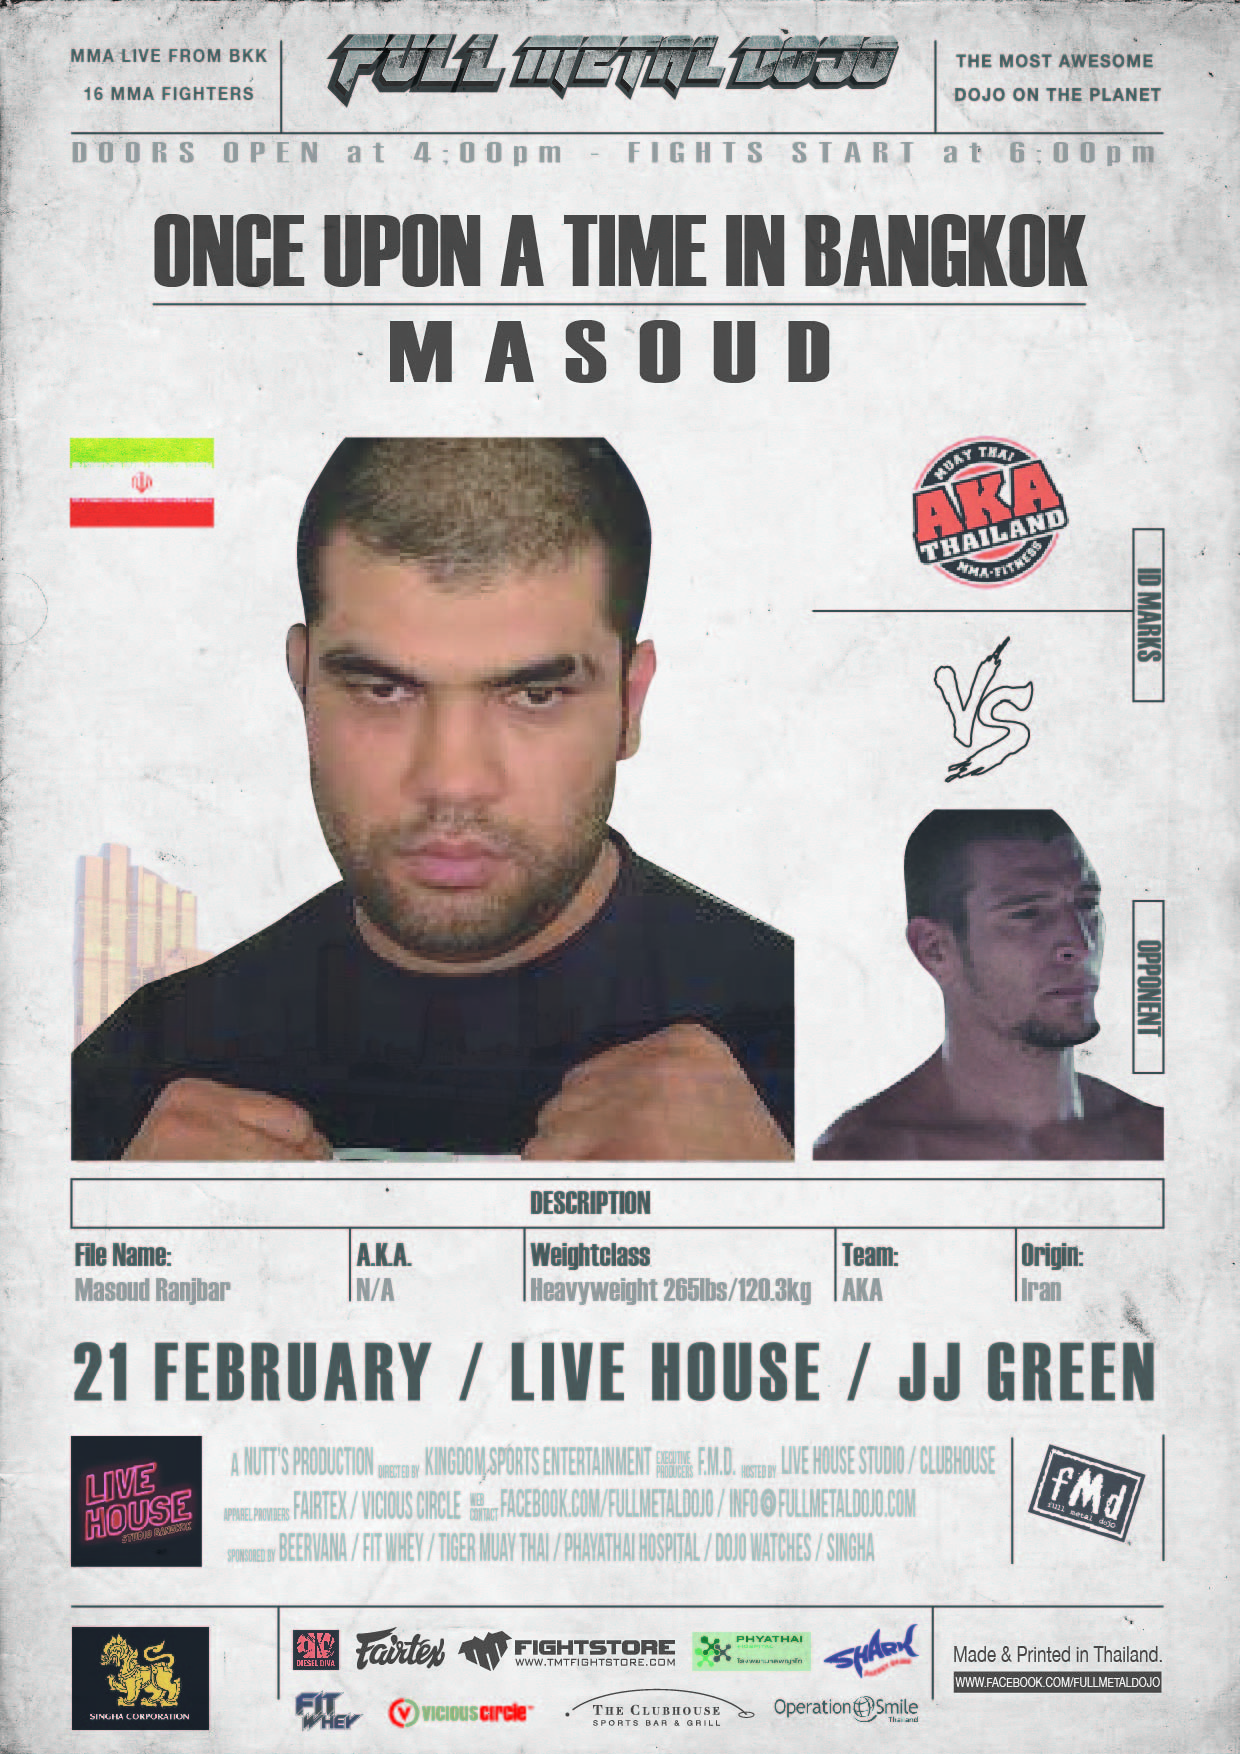 Masoud Ranjbar FMD4 MMA Fighter